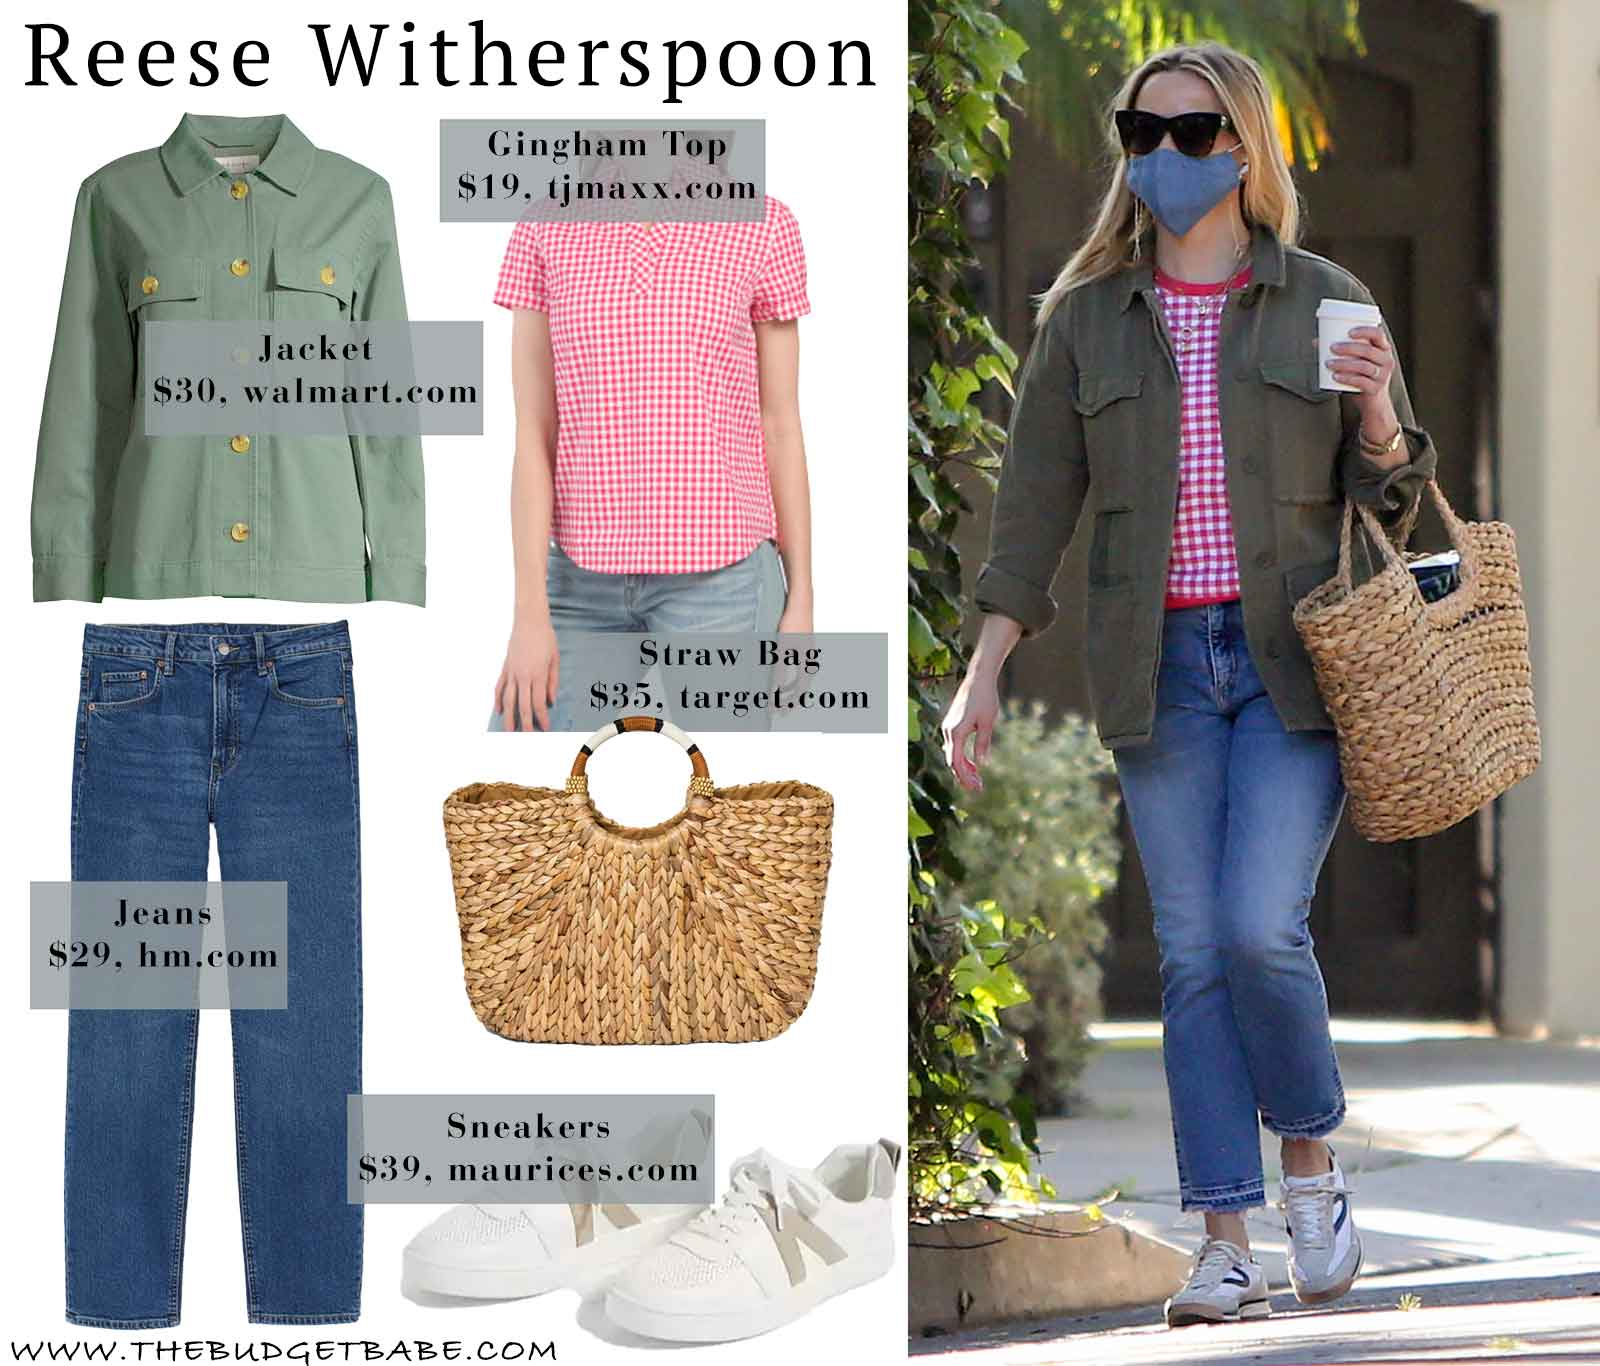 Reese Witherspoon gingham shirt and cargo jacket look for less